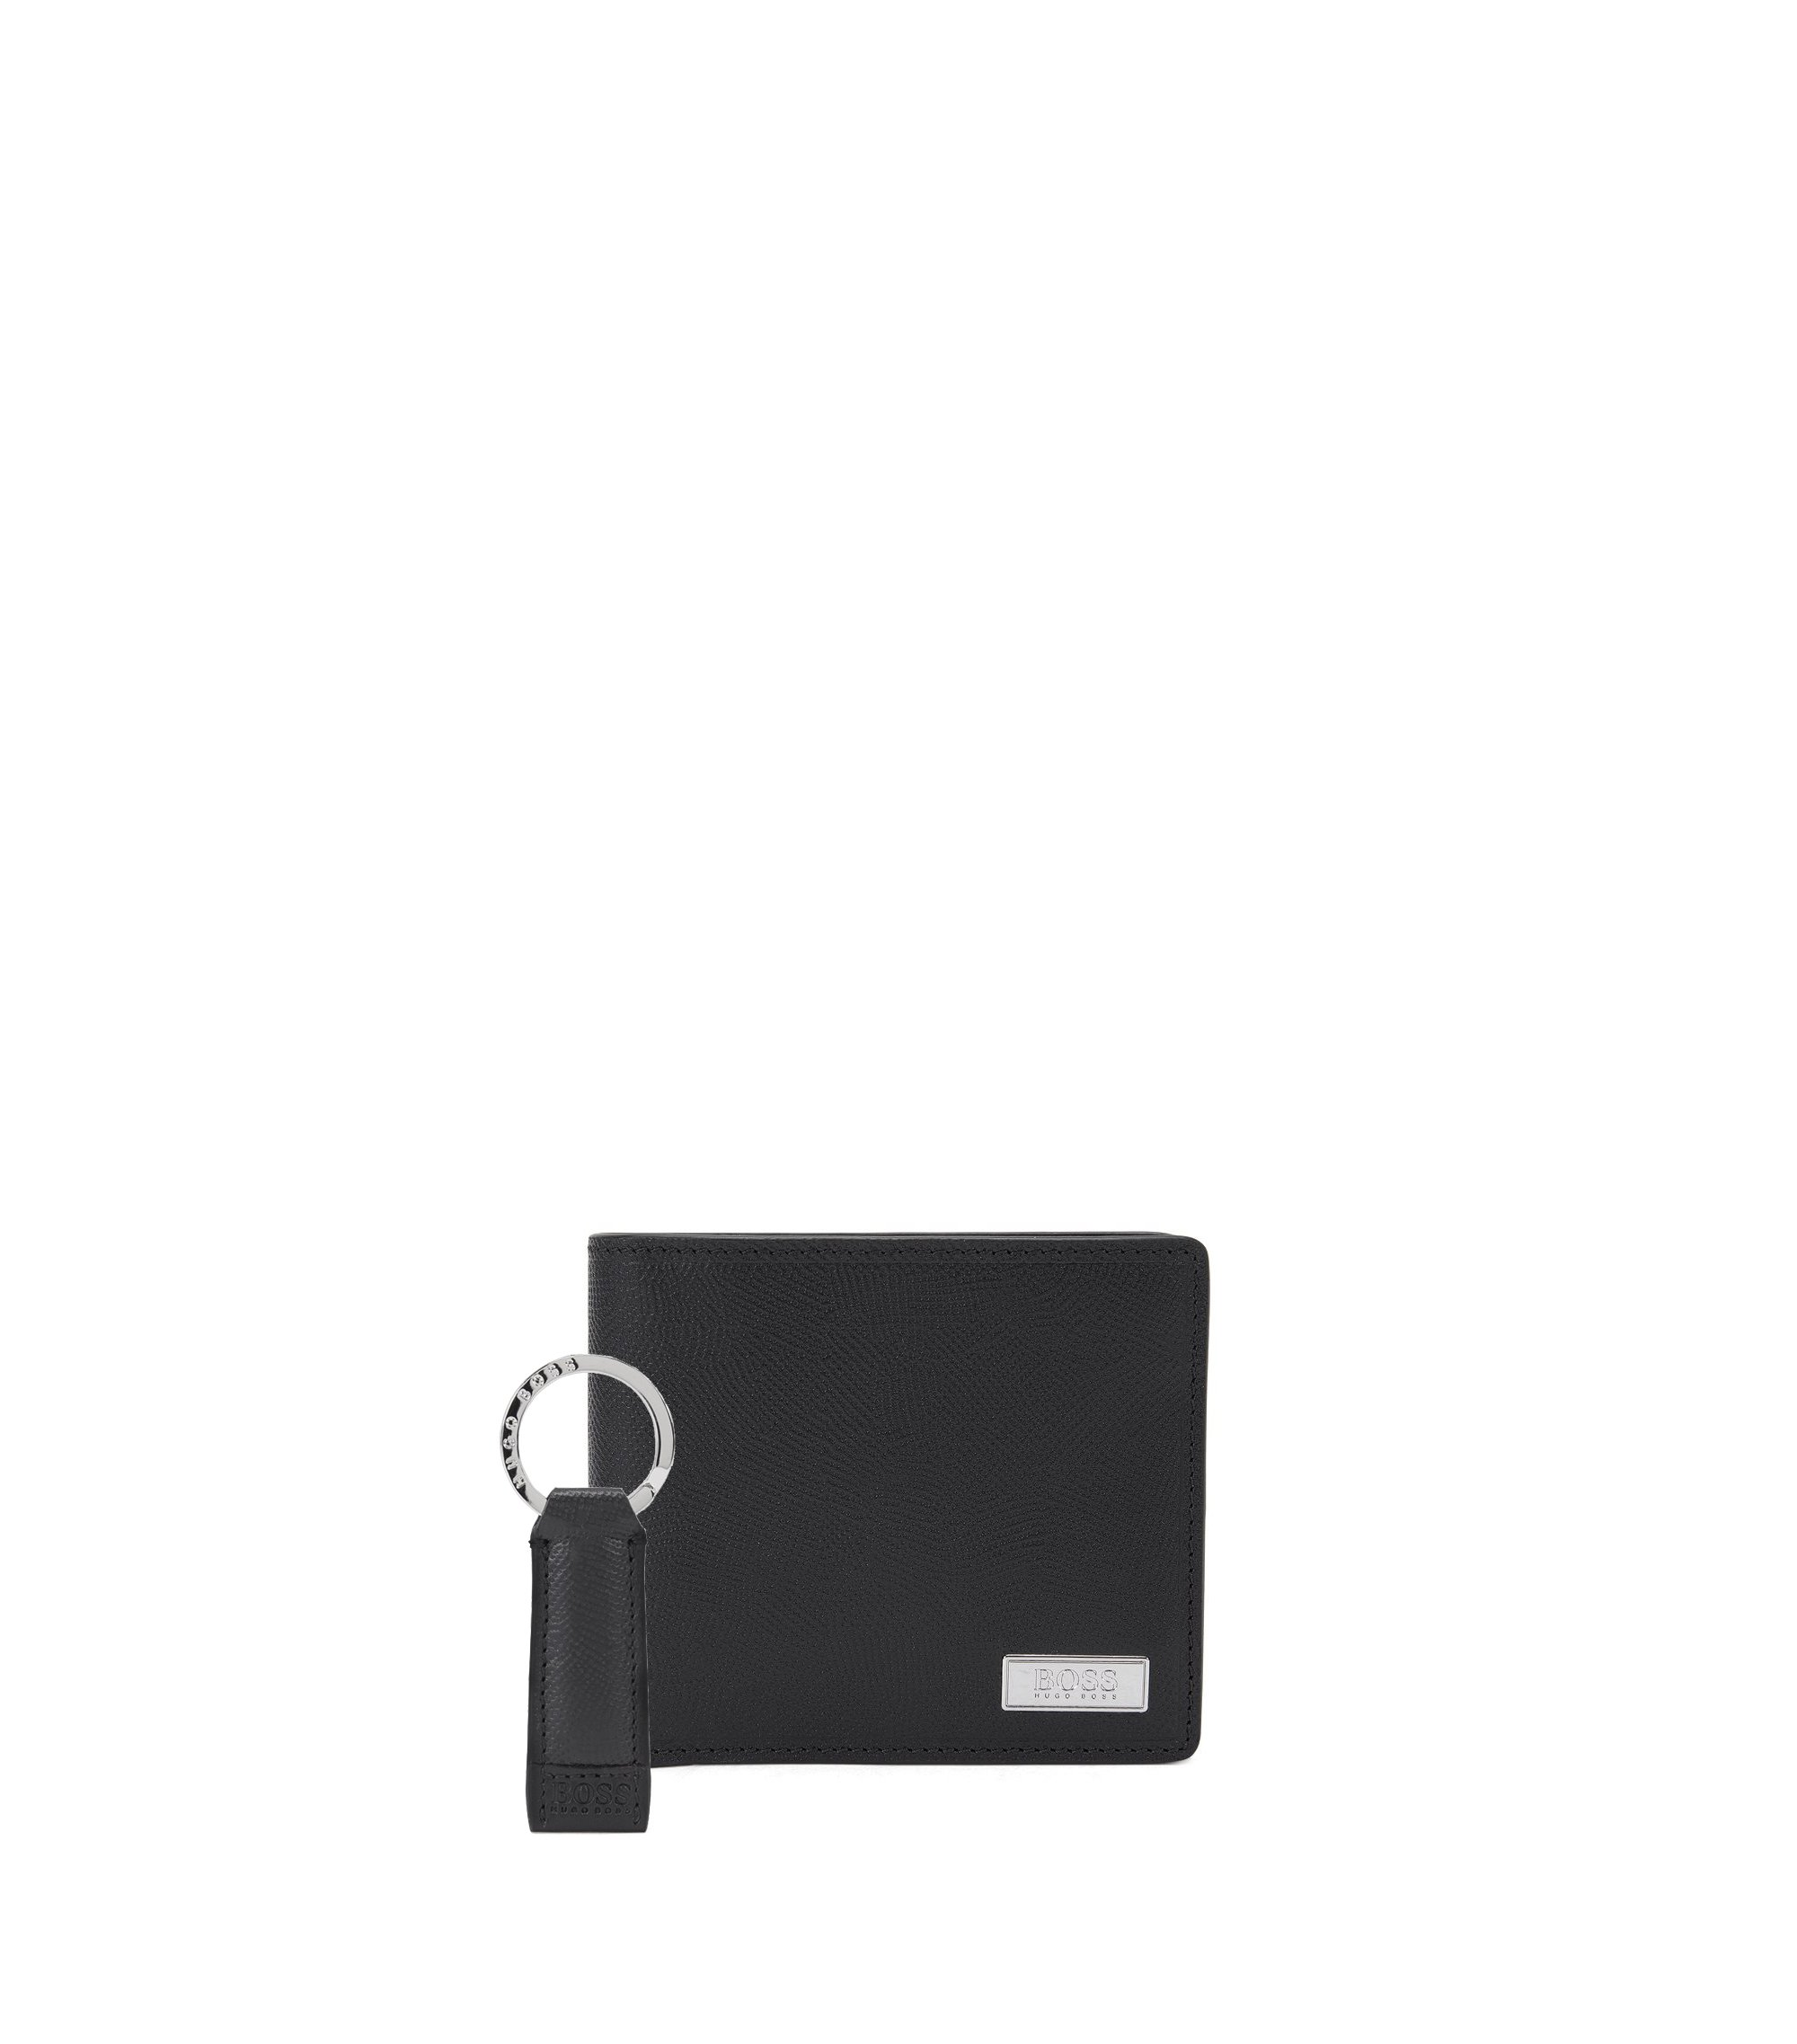 Leather Wallet & Key Ring Gift Set | Coin Key, Black